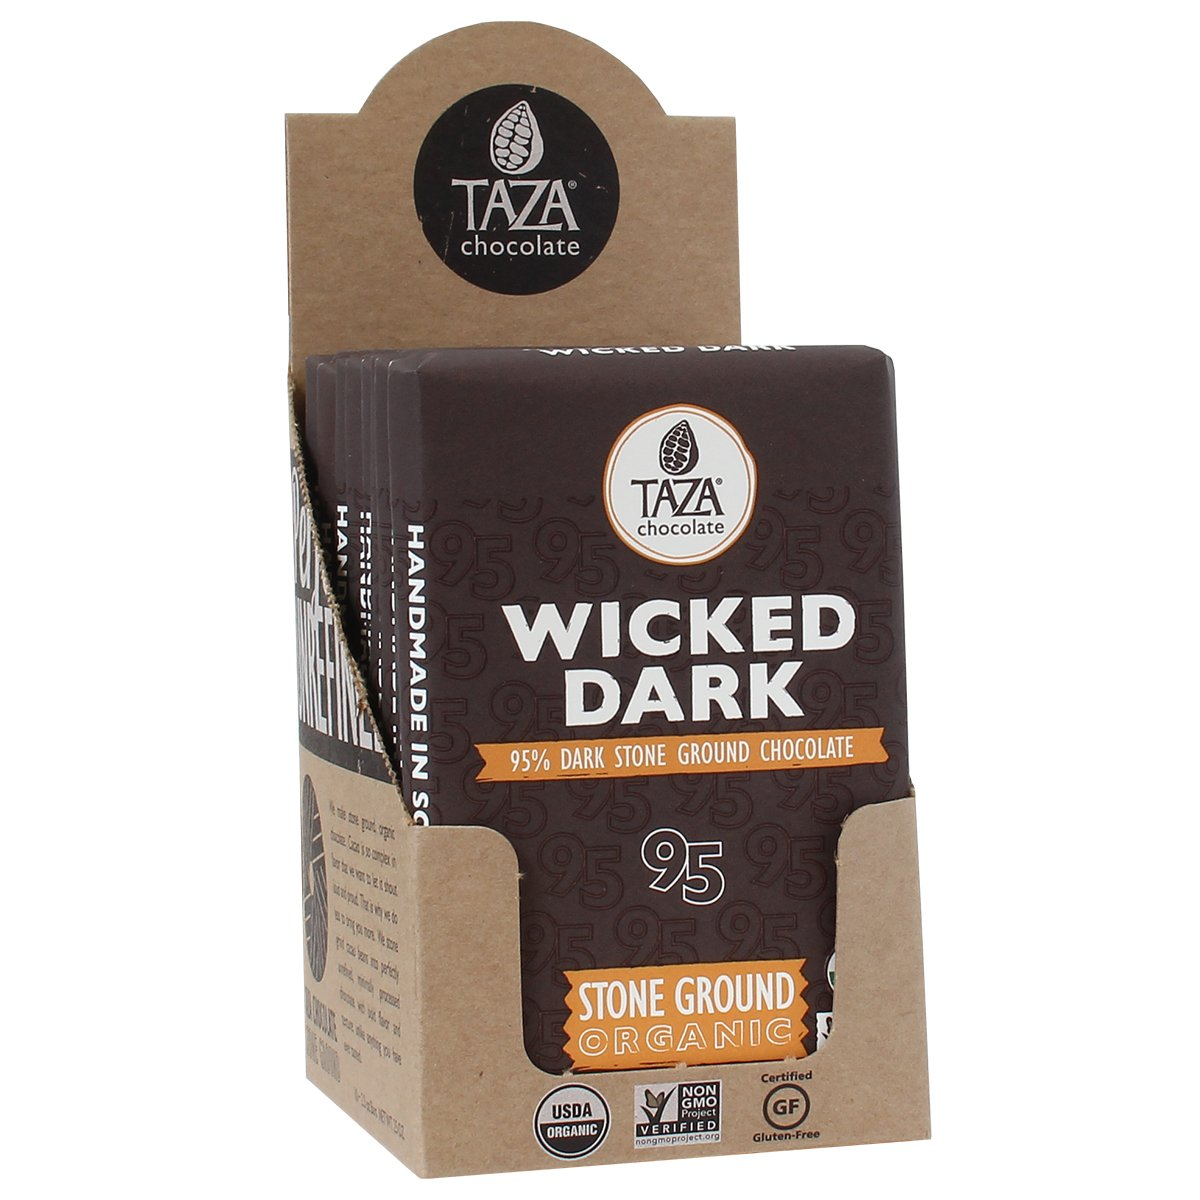 Amazon.com : Taza Chocolate, 95% Wicked Dark Amaze Bar, 2.5 oz ...